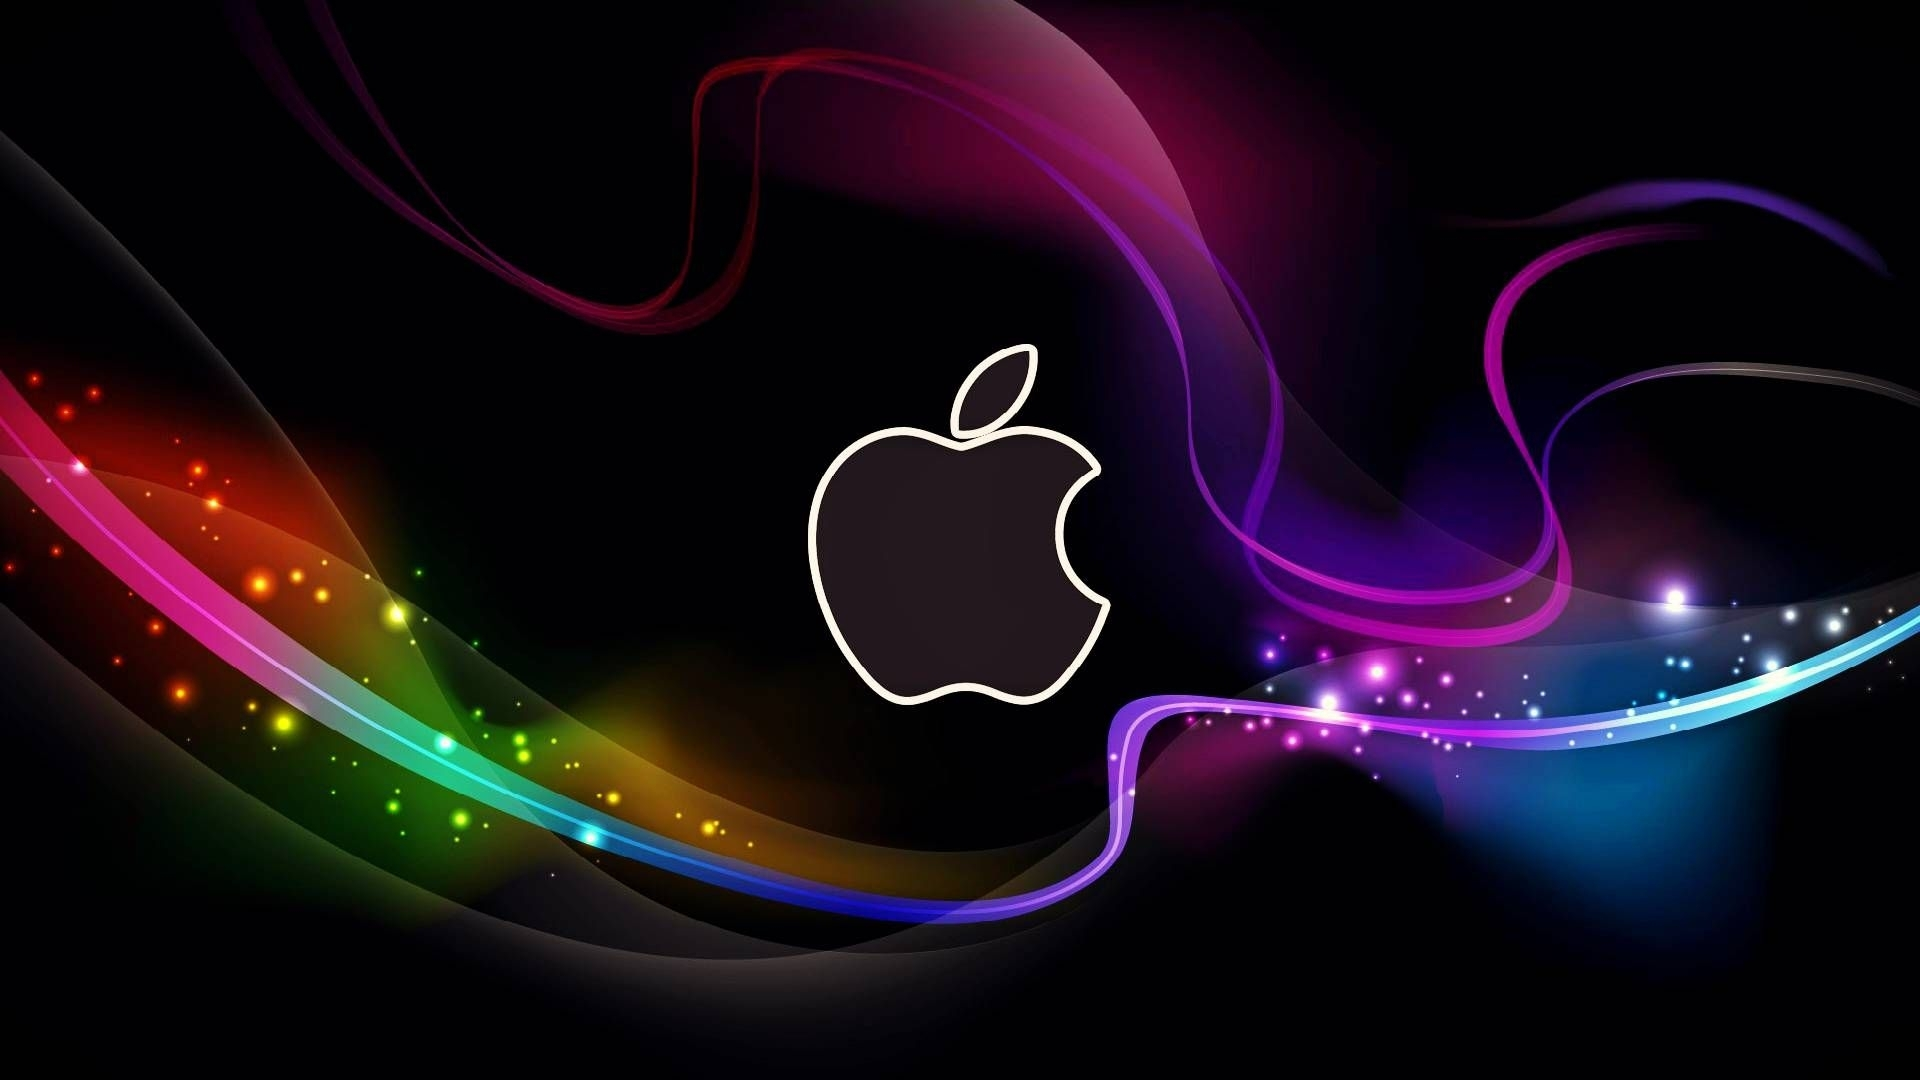 hd cool apple logo with abstract background wallpapers - hd desktop